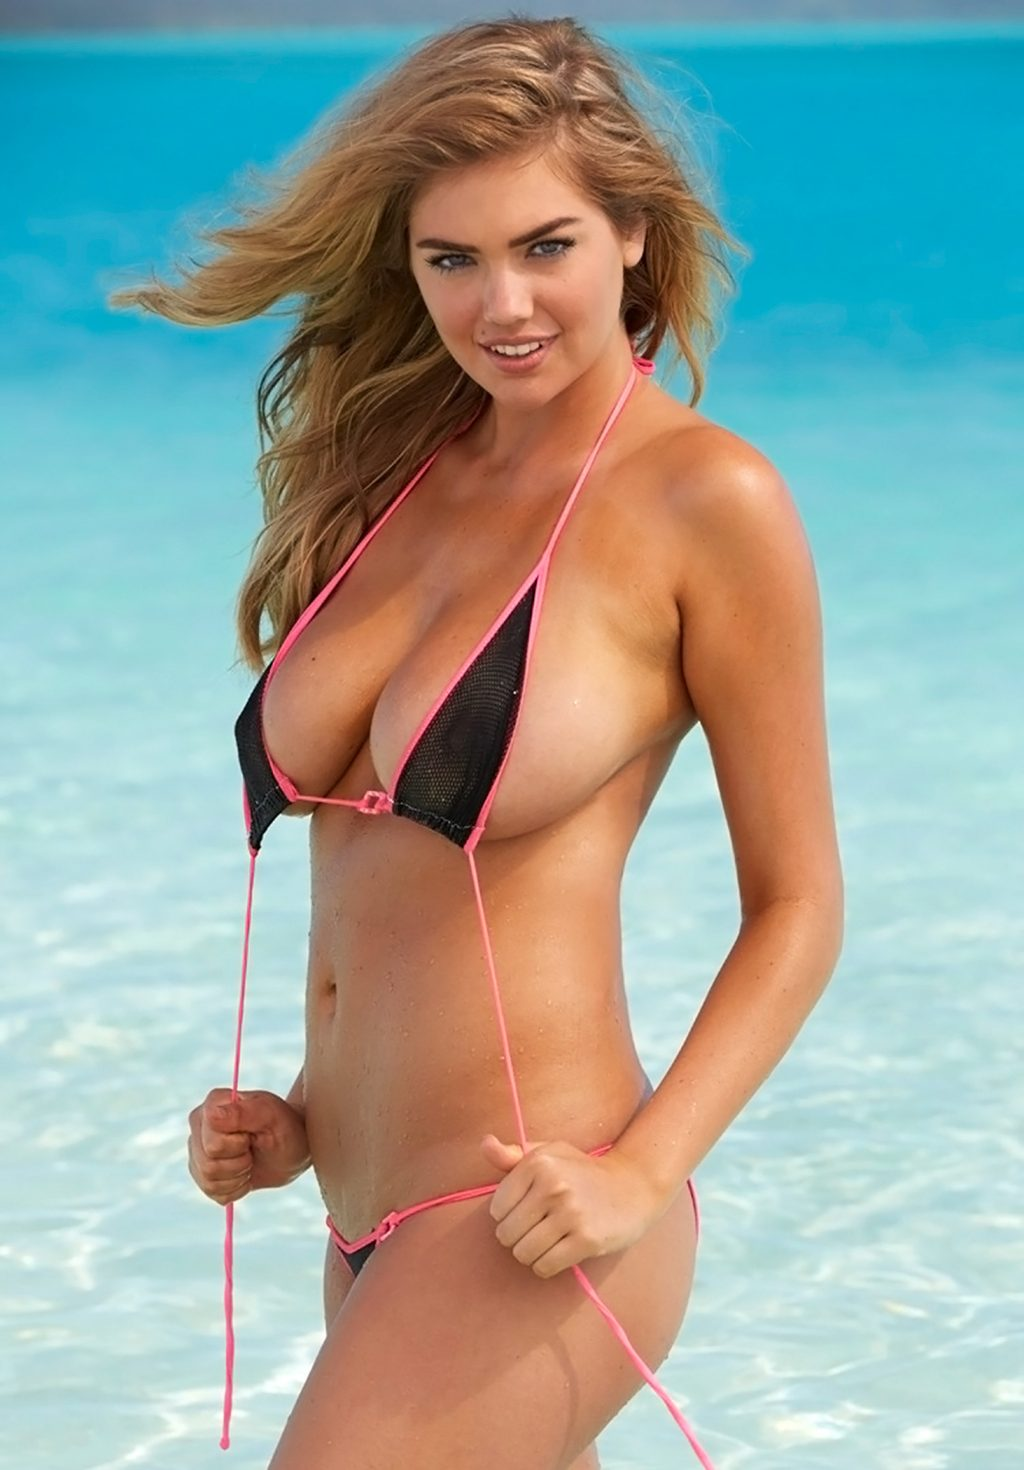 Kate Upton Boobs Are Out Of This World - ScandalPost